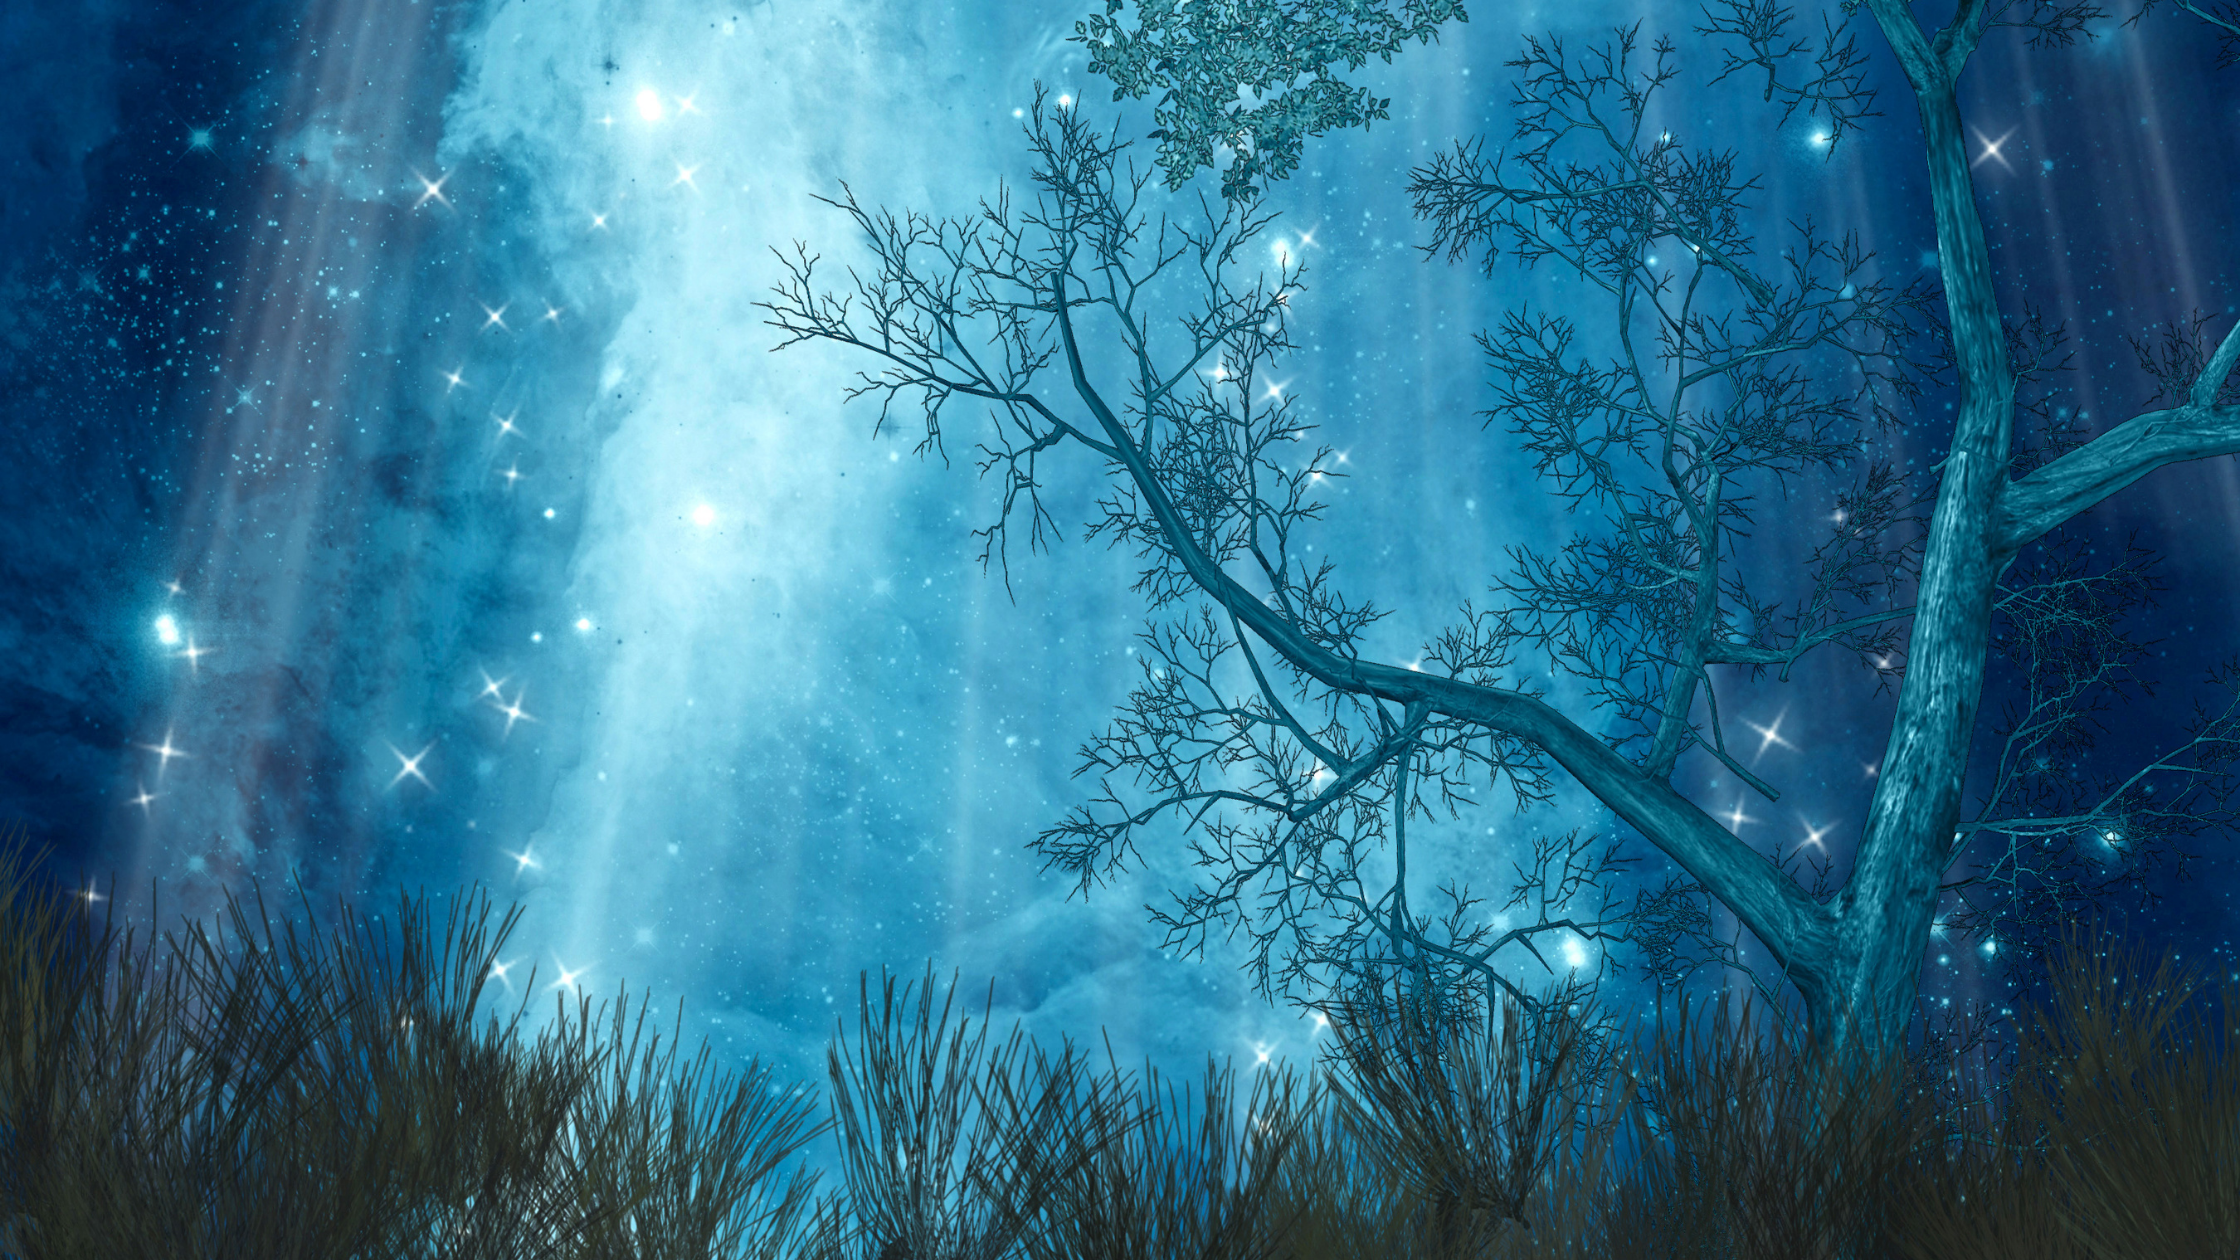 a tree with thin branches is silhouetted against a moonlit sky with sparkling stars